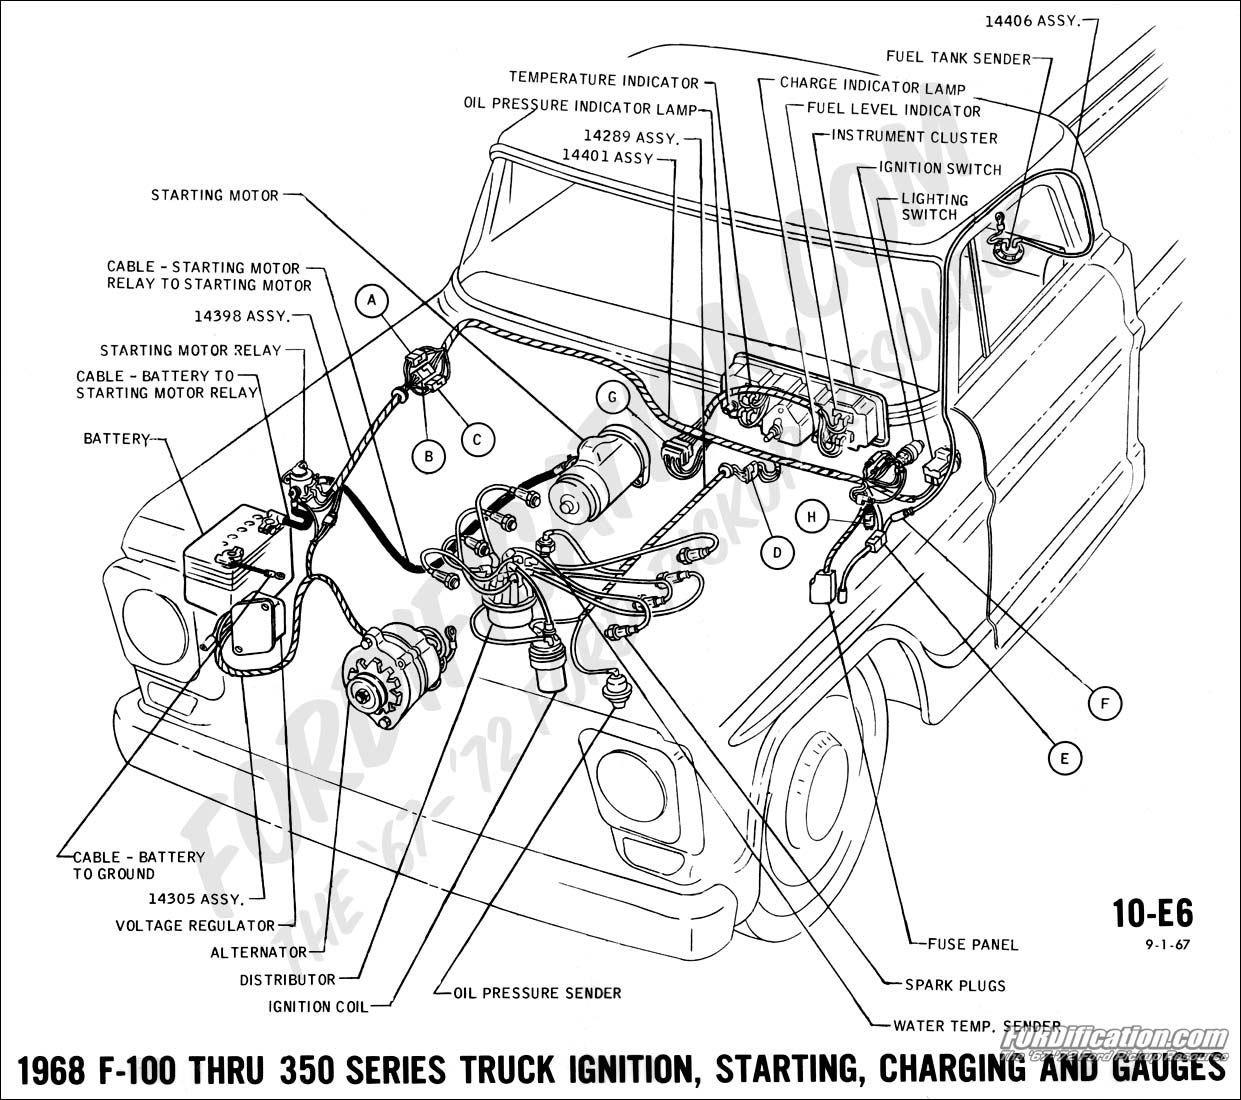 1987 chevy truck wiring diagram - wirdig Wiring diagram